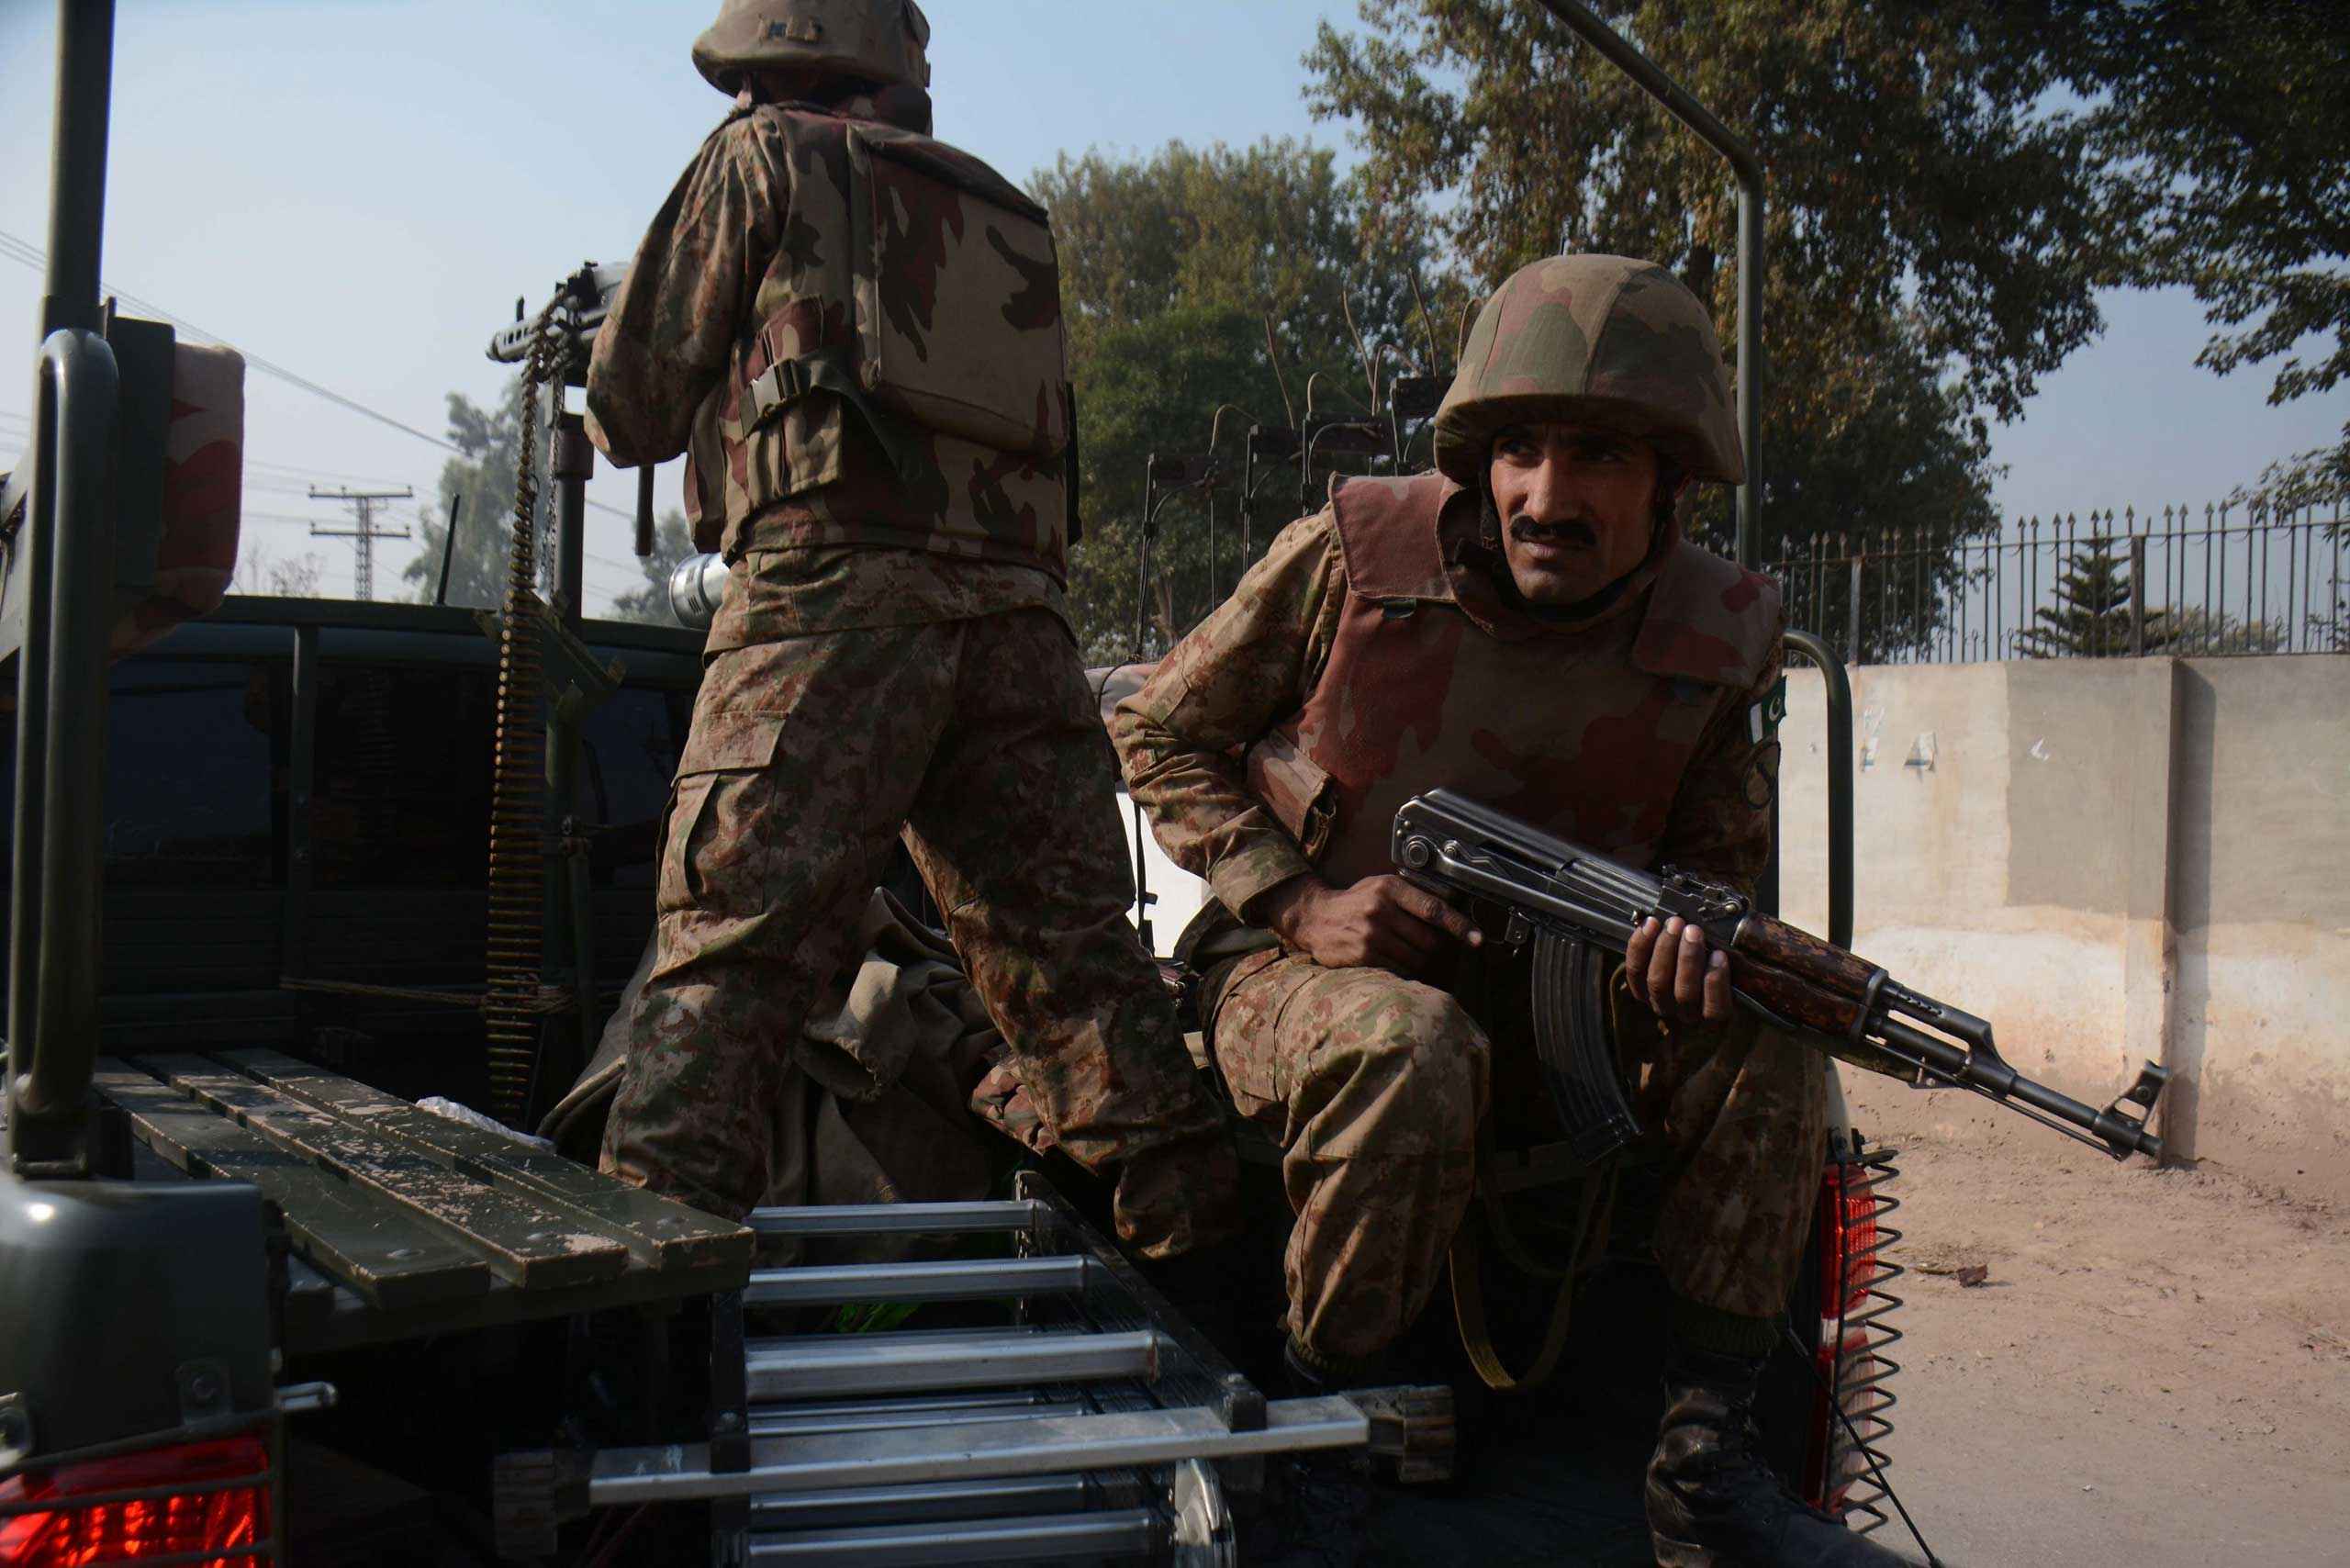 Pakistani security forces take positions following a Taliban attack at an Army run school, in Peshawar, on Dec. 16, 2014.